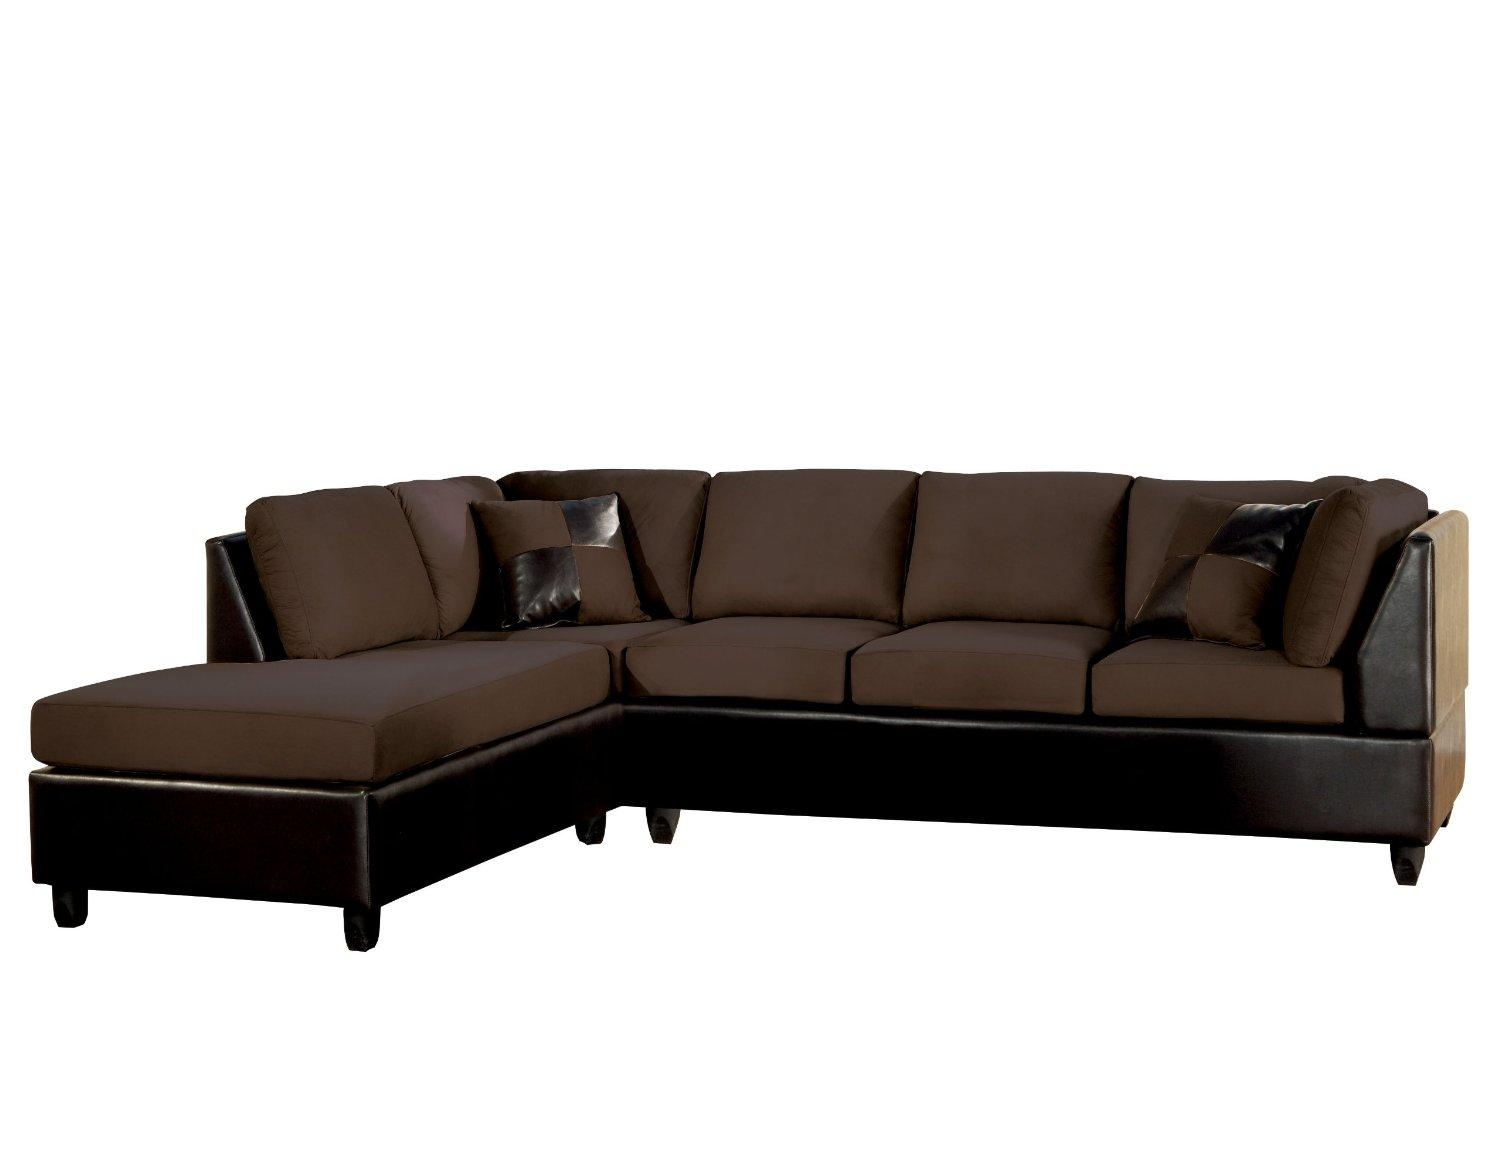 Furniture & Rug: Fancy Sectional Sleeper Sofa For Best Home Intended For Queen Sofa Sleeper Sectional Microfiber (View 18 of 20)